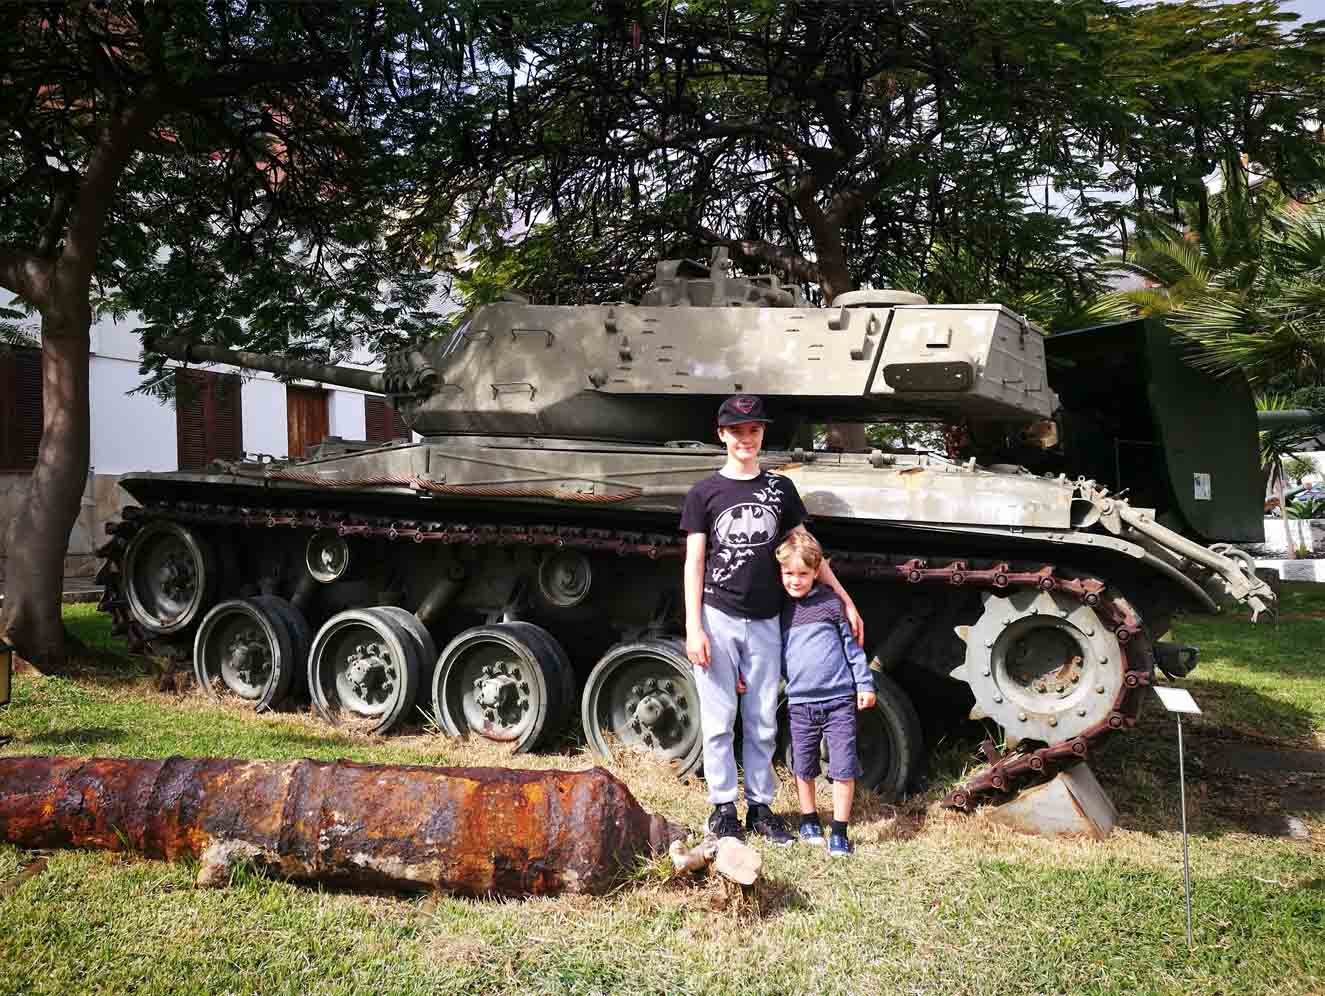 Free Things to Do With Kids in Tenerife - Santa Cruz Military Museum With Kids